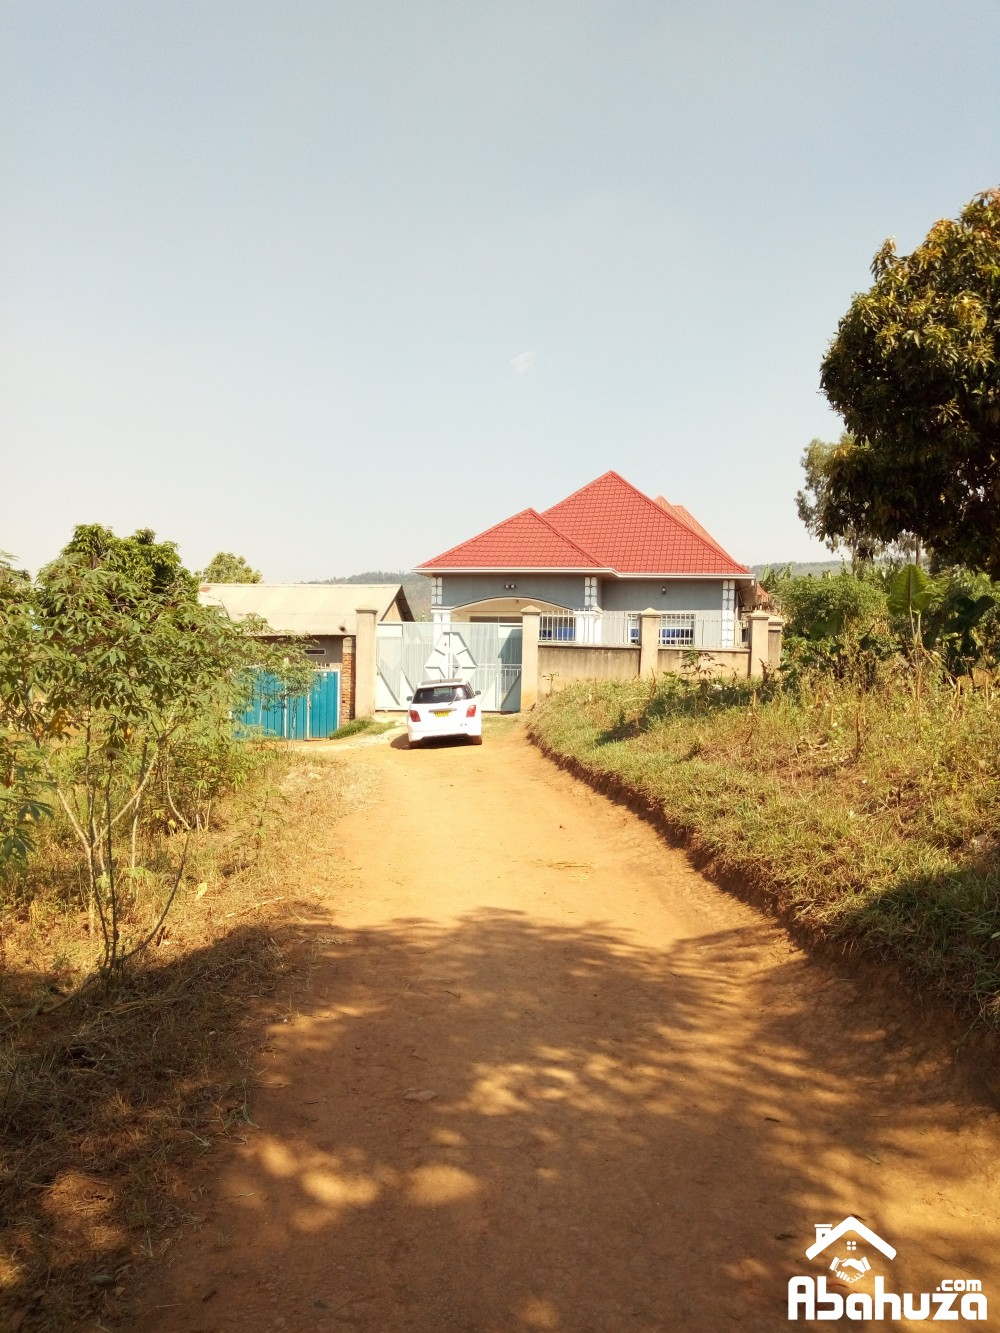 A HOUSE WITH GOOD FINISHING FOR SALE AT GISOZI